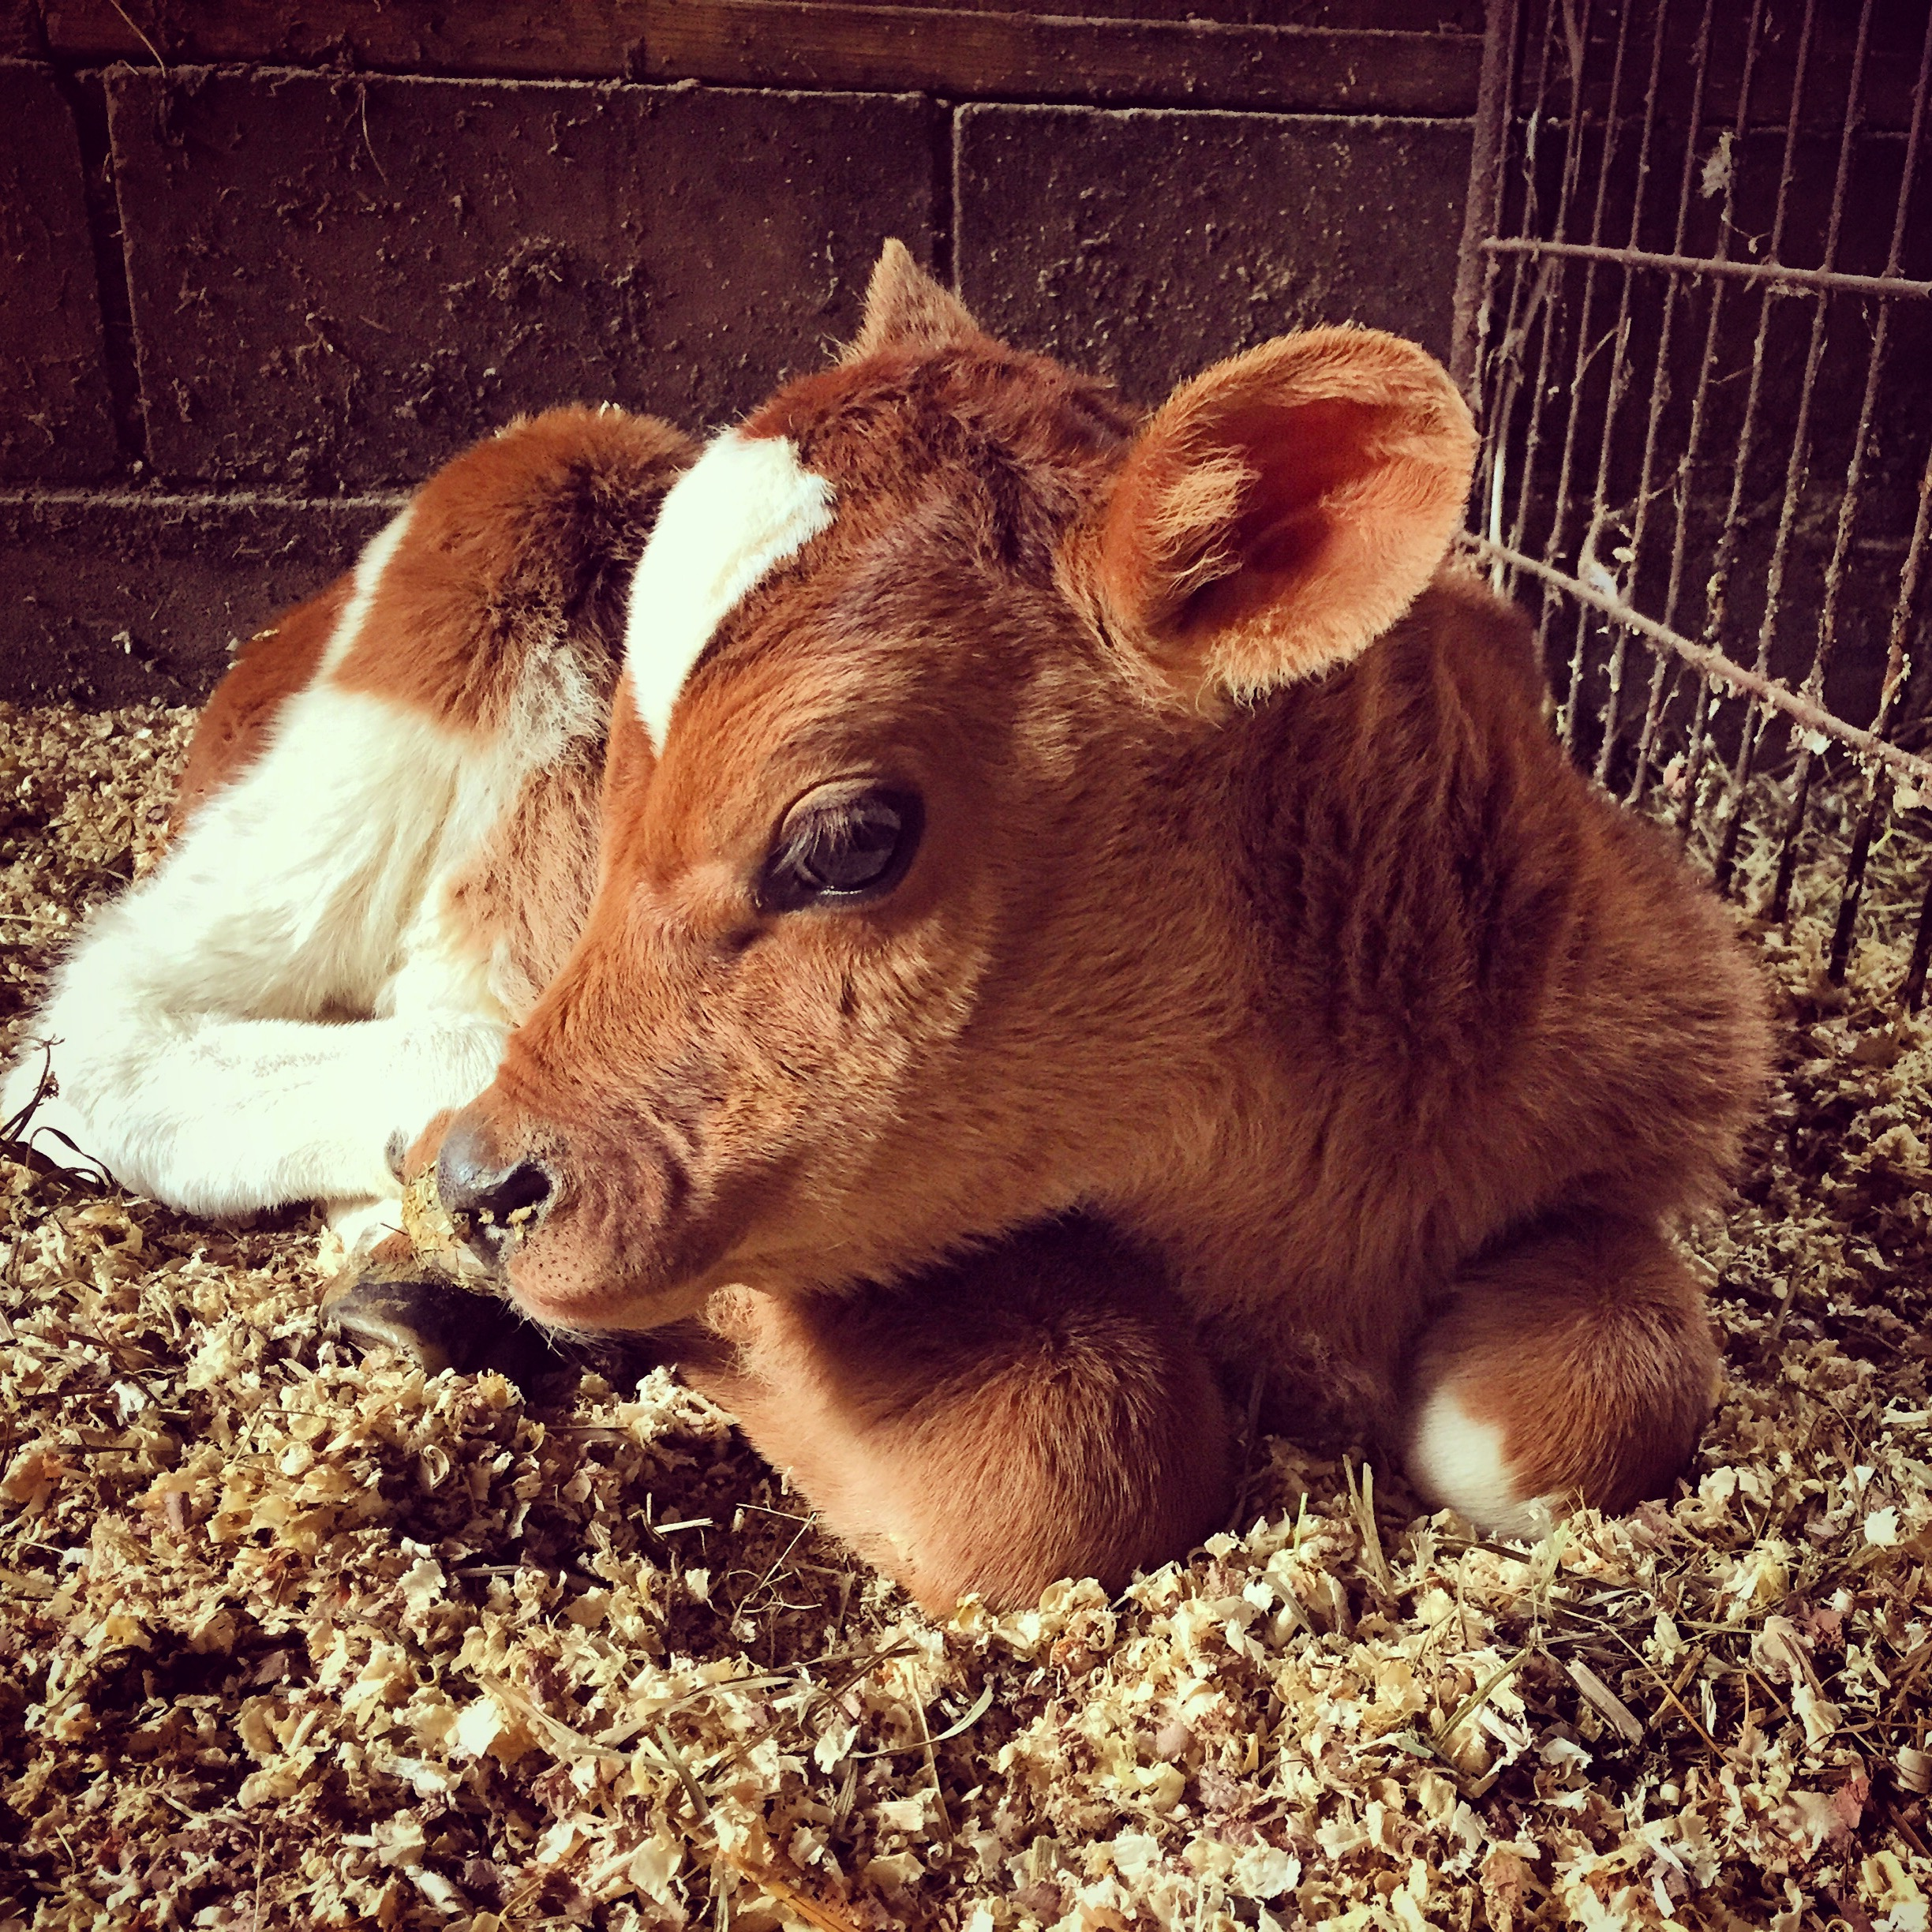 New calf with heart-shaped markings!